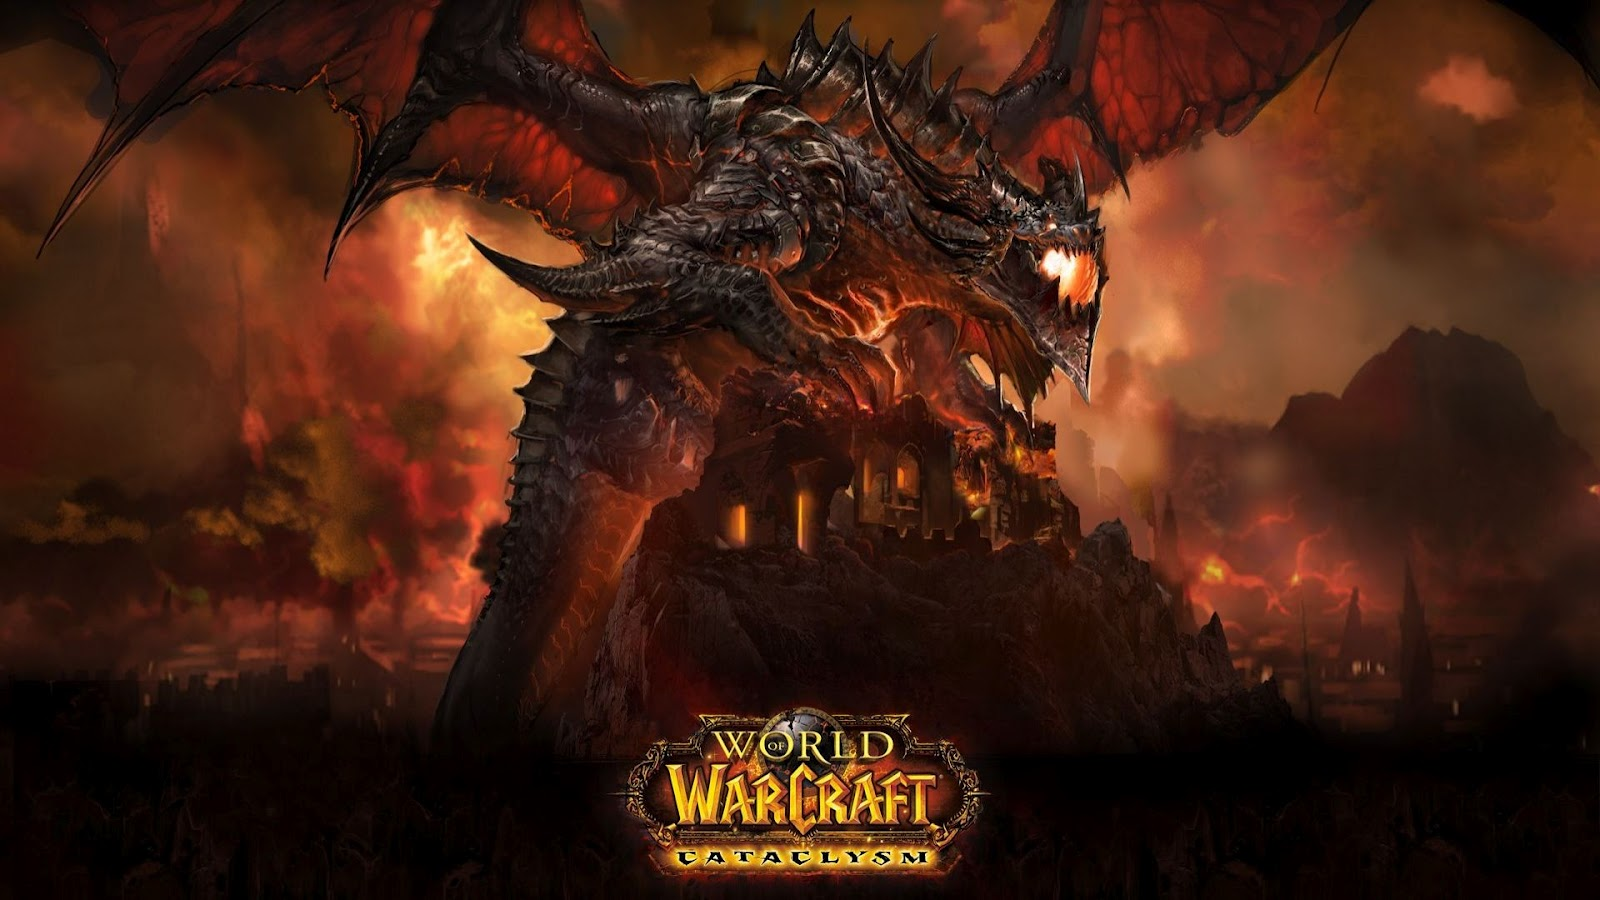 http://2.bp.blogspot.com/-pvoLjTz_nys/UA6p212KwjI/AAAAAAAAA24/LCbq9RliHzk/s1600/World+of+Warcraft+wallpapers++deathwing_1920x1080.jpg